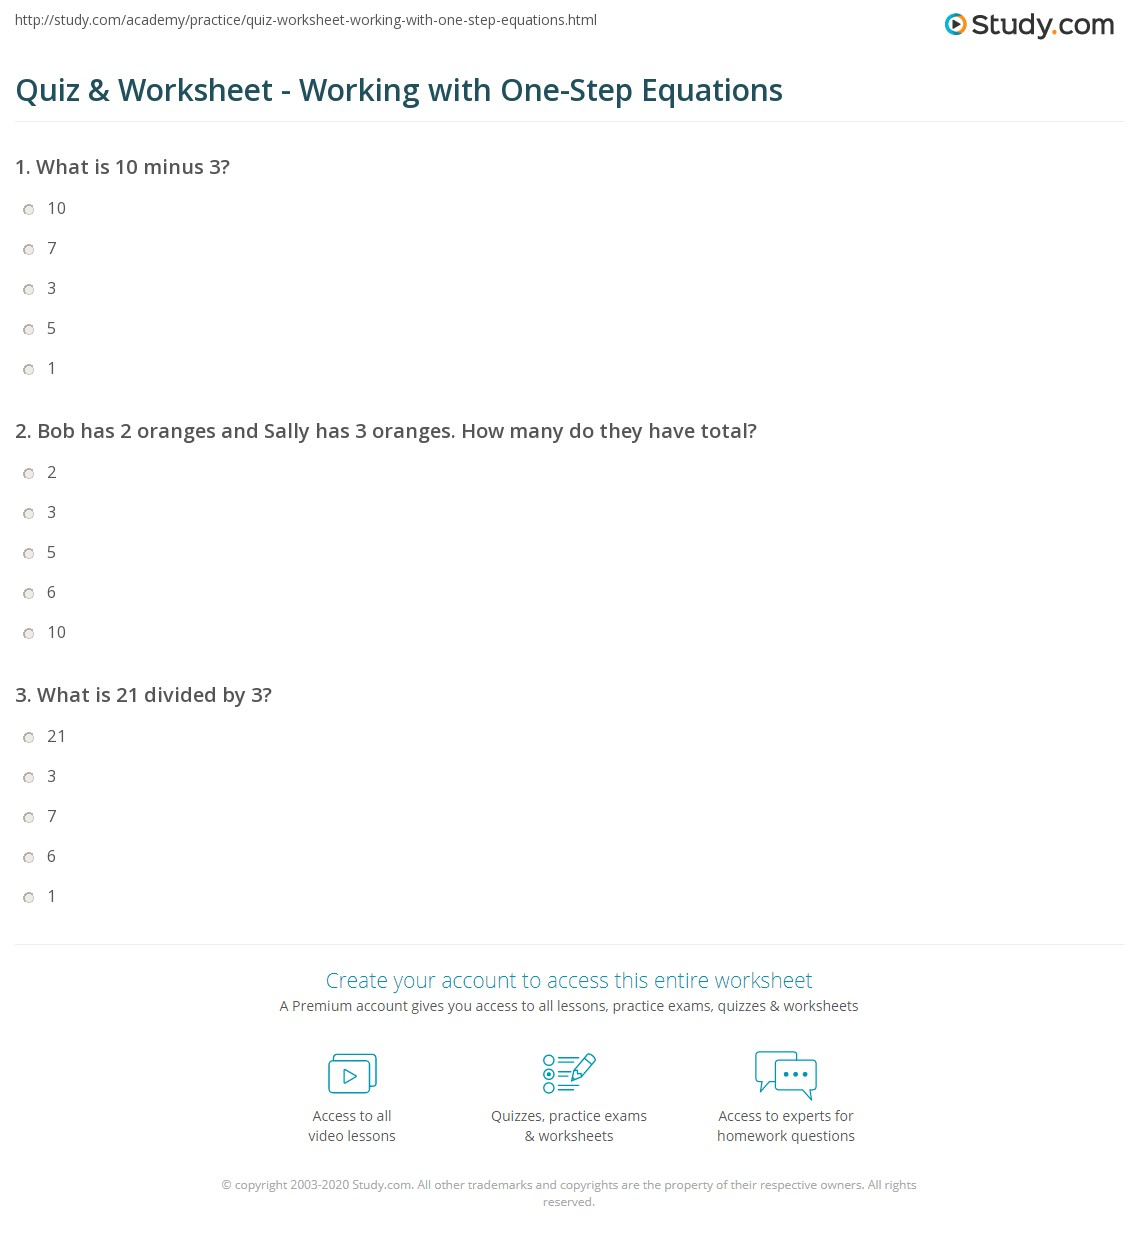 Quiz & Worksheet - Working with One-Step Equations | Study.com